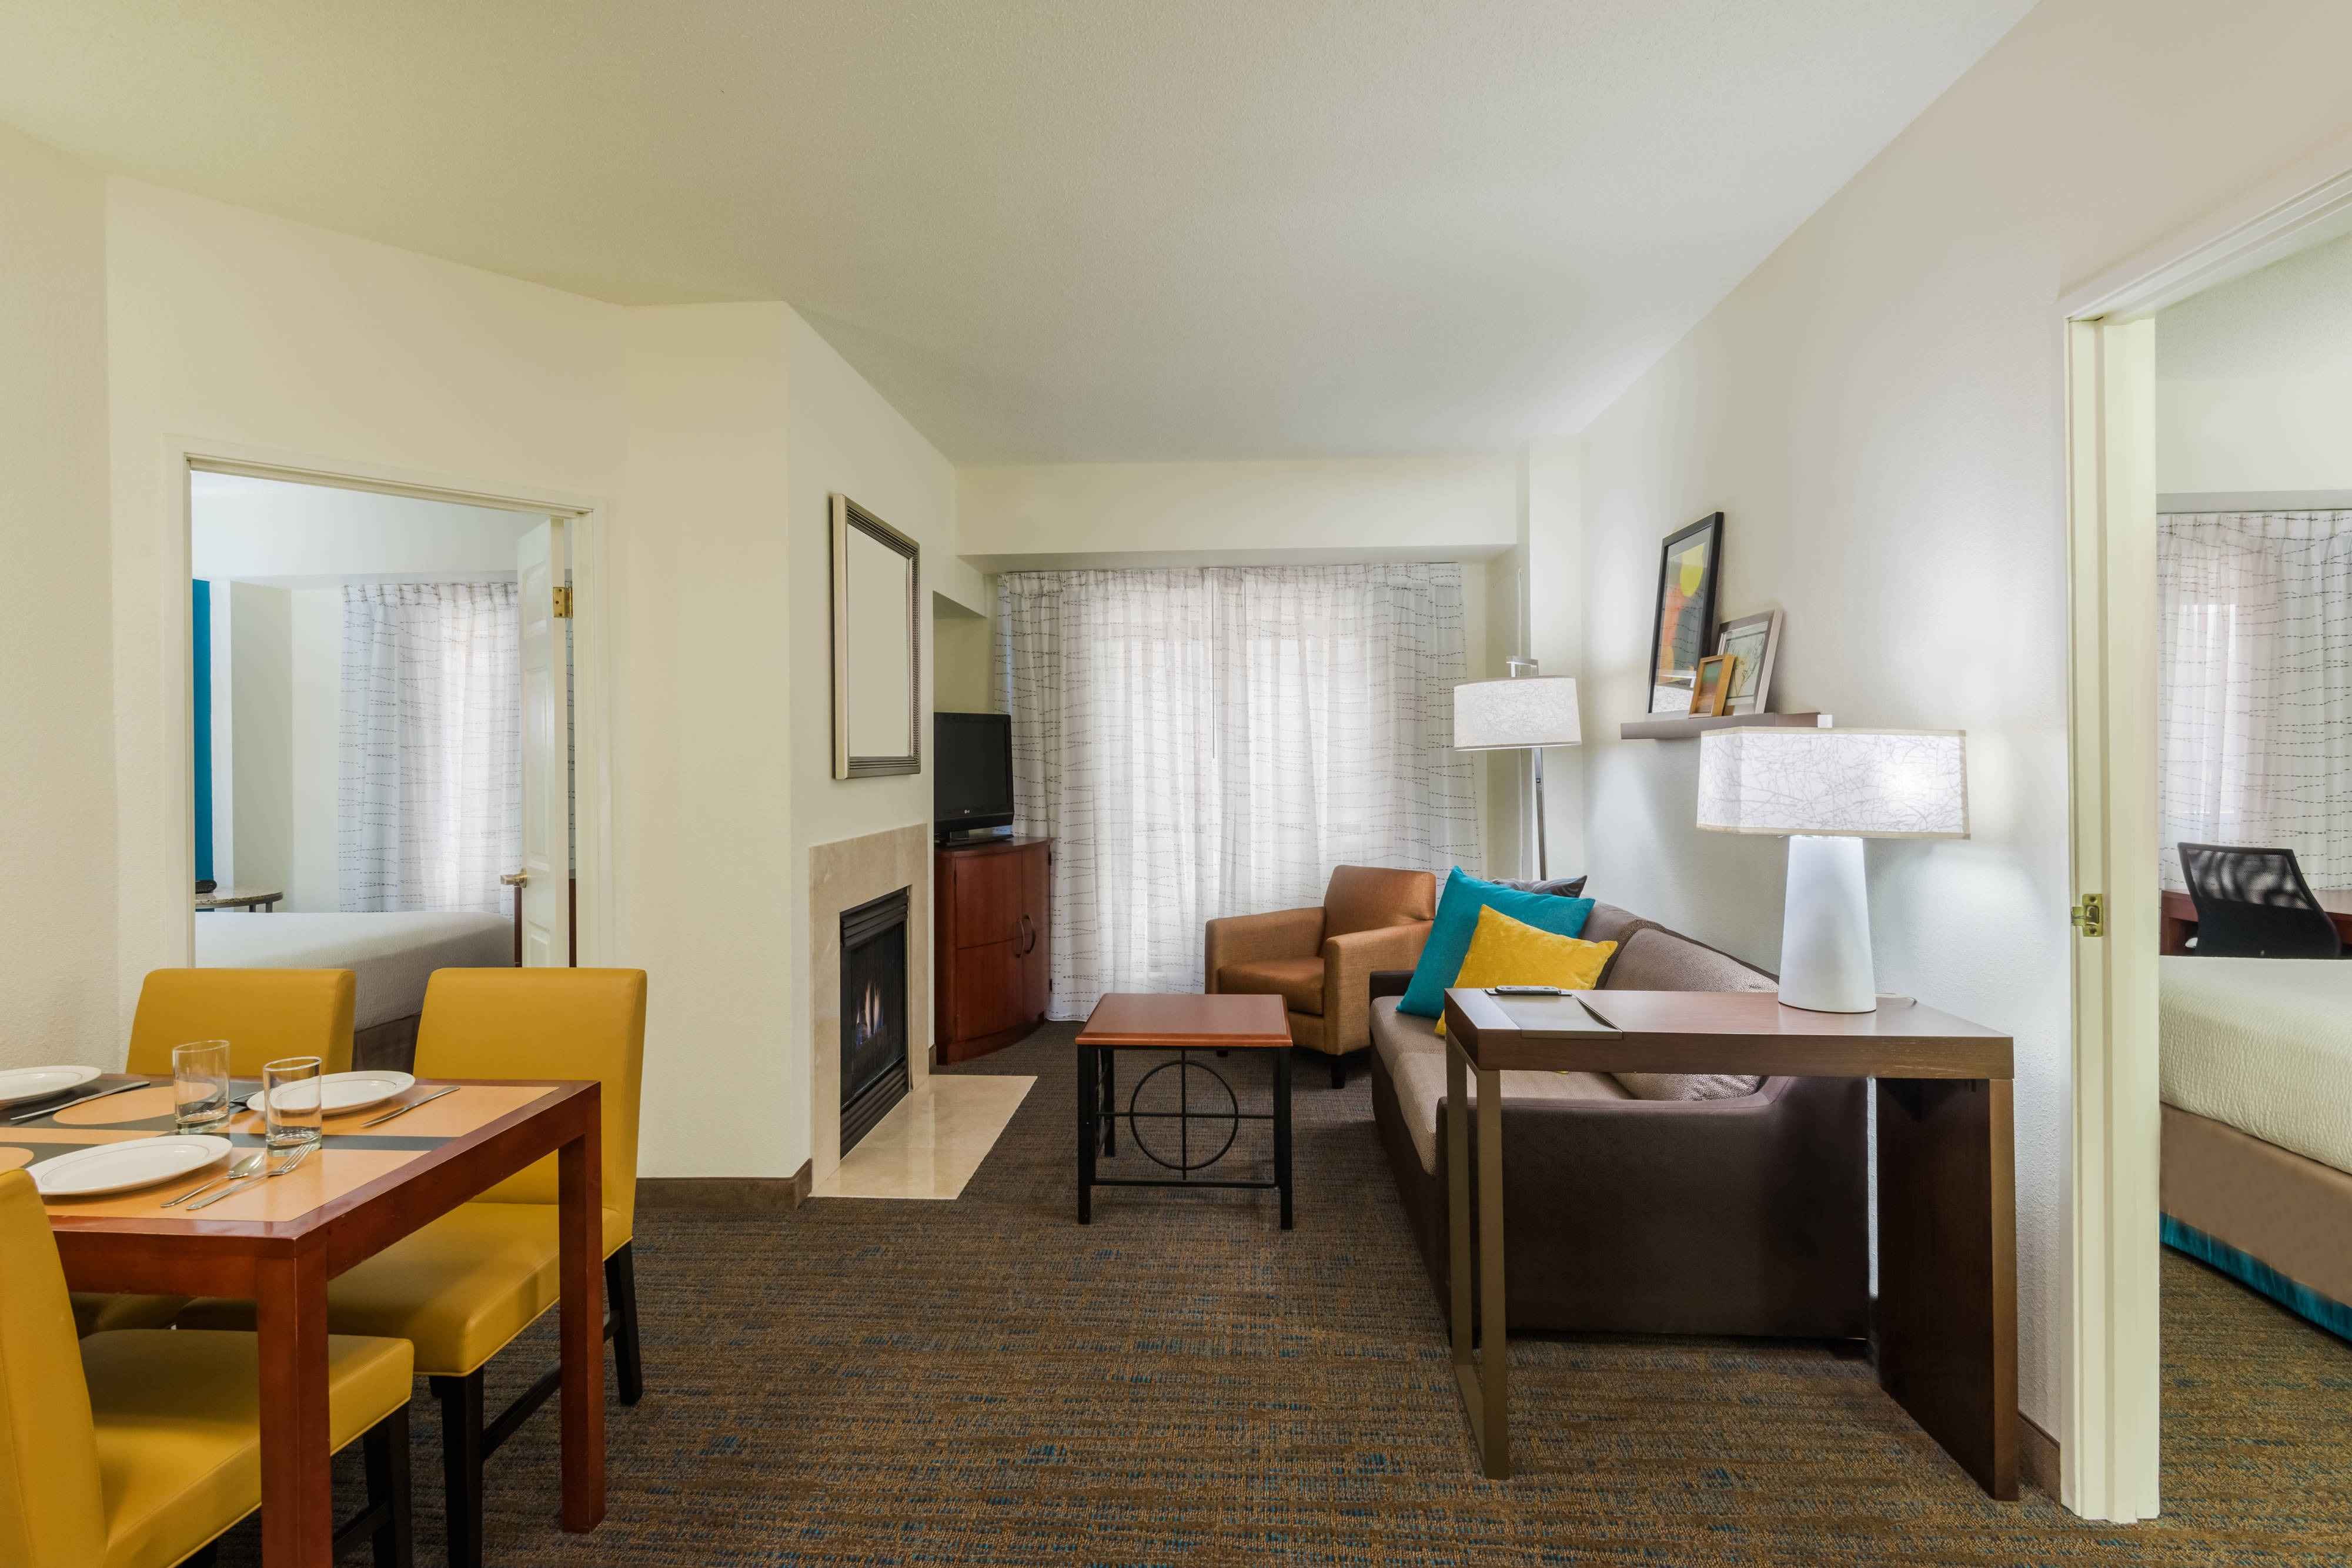 Hotels Downtown Chattanooga Residence Inn Chattanooga Downtown